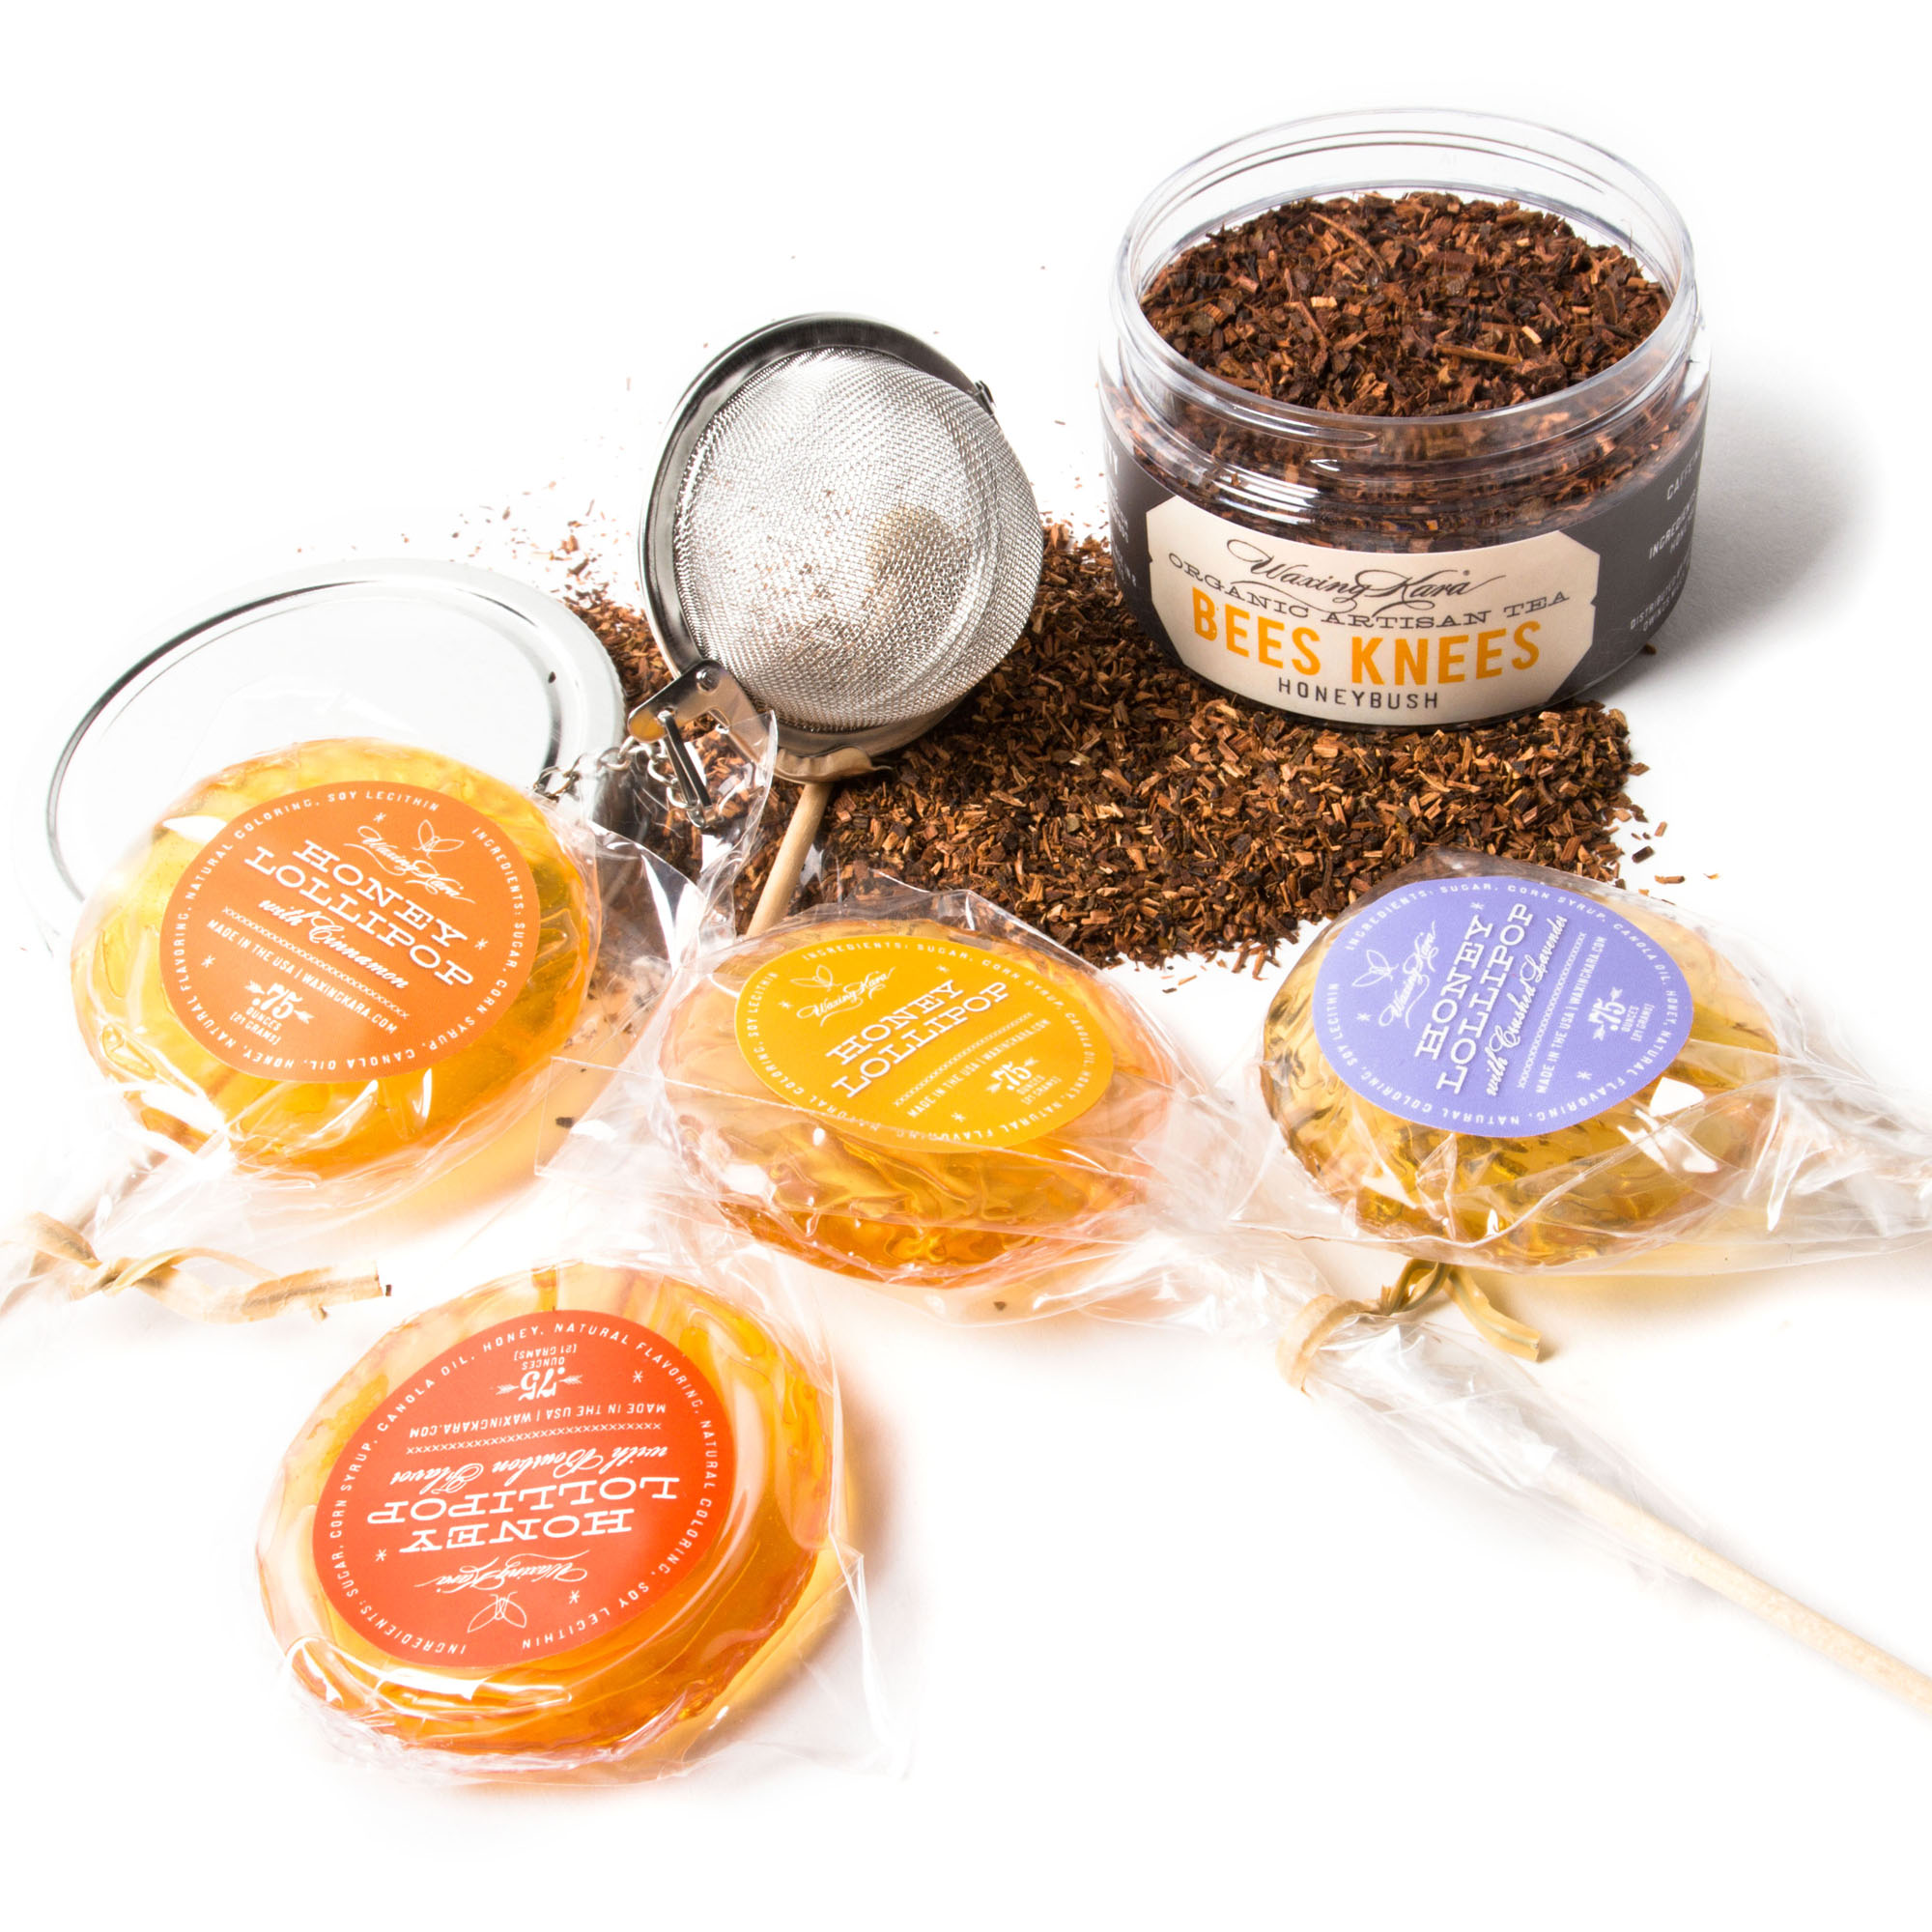 Tea Time to go contents loose leaf tea, four lollipops, stainless tea ball on table